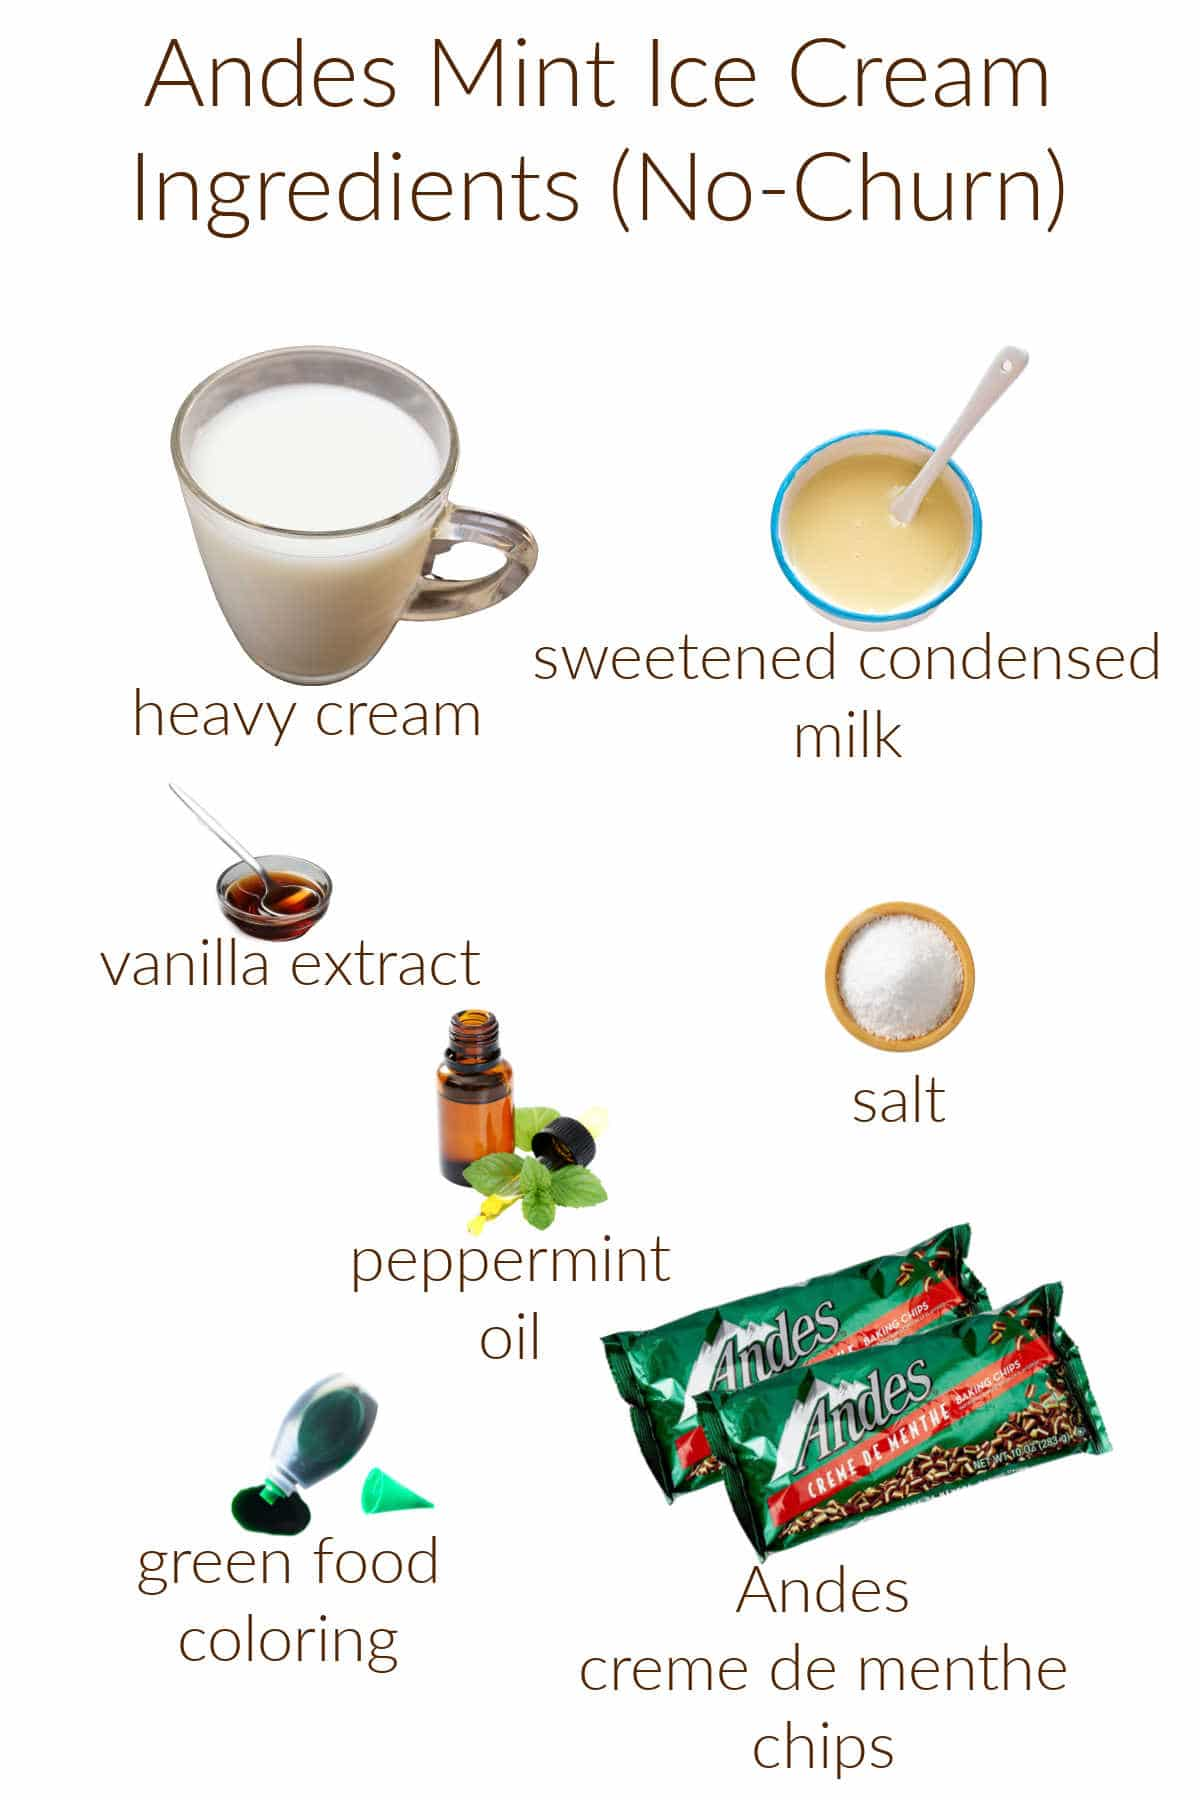 Photo collage of ingredients needed to make Andes creme de menthe ice cream.